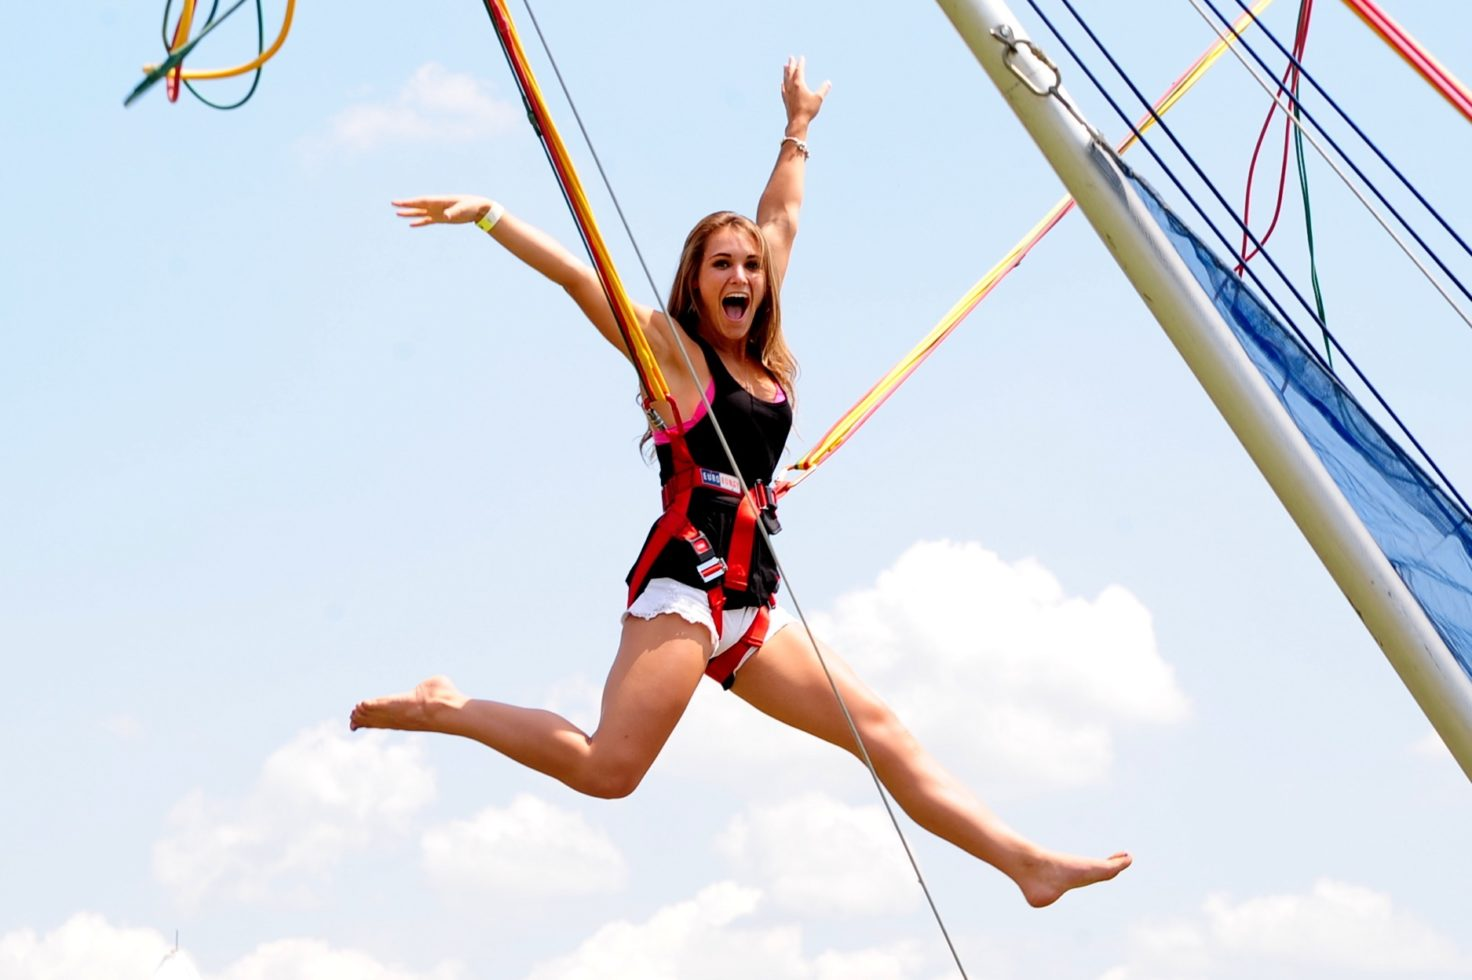 young woman doing air jumps on bungee trampoline